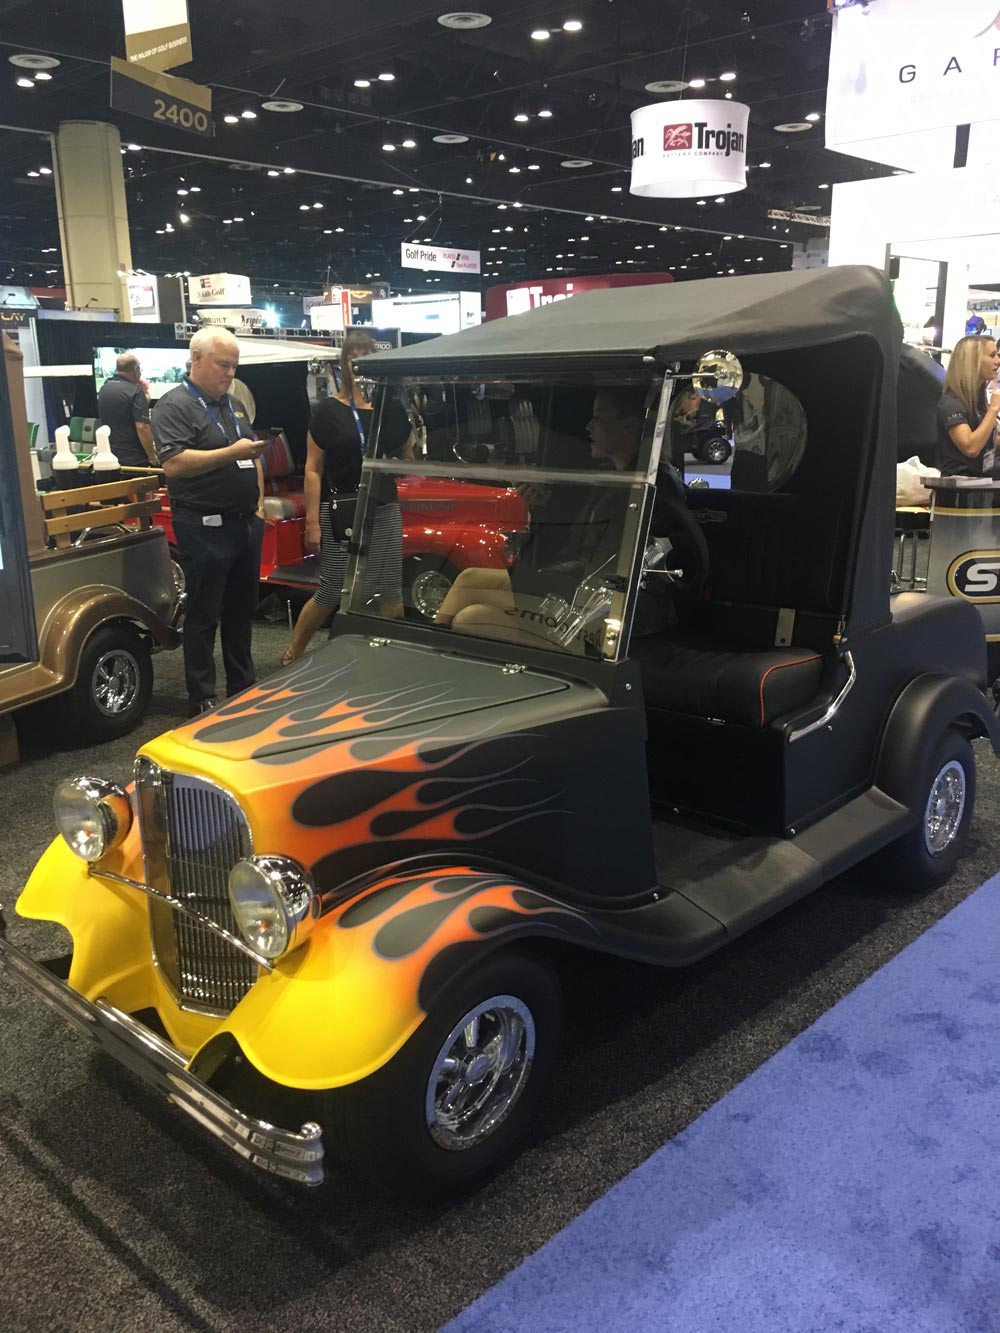 Pga merchandise show 8 super luxe items for the golfer for Mercedes benz garia golf cart price